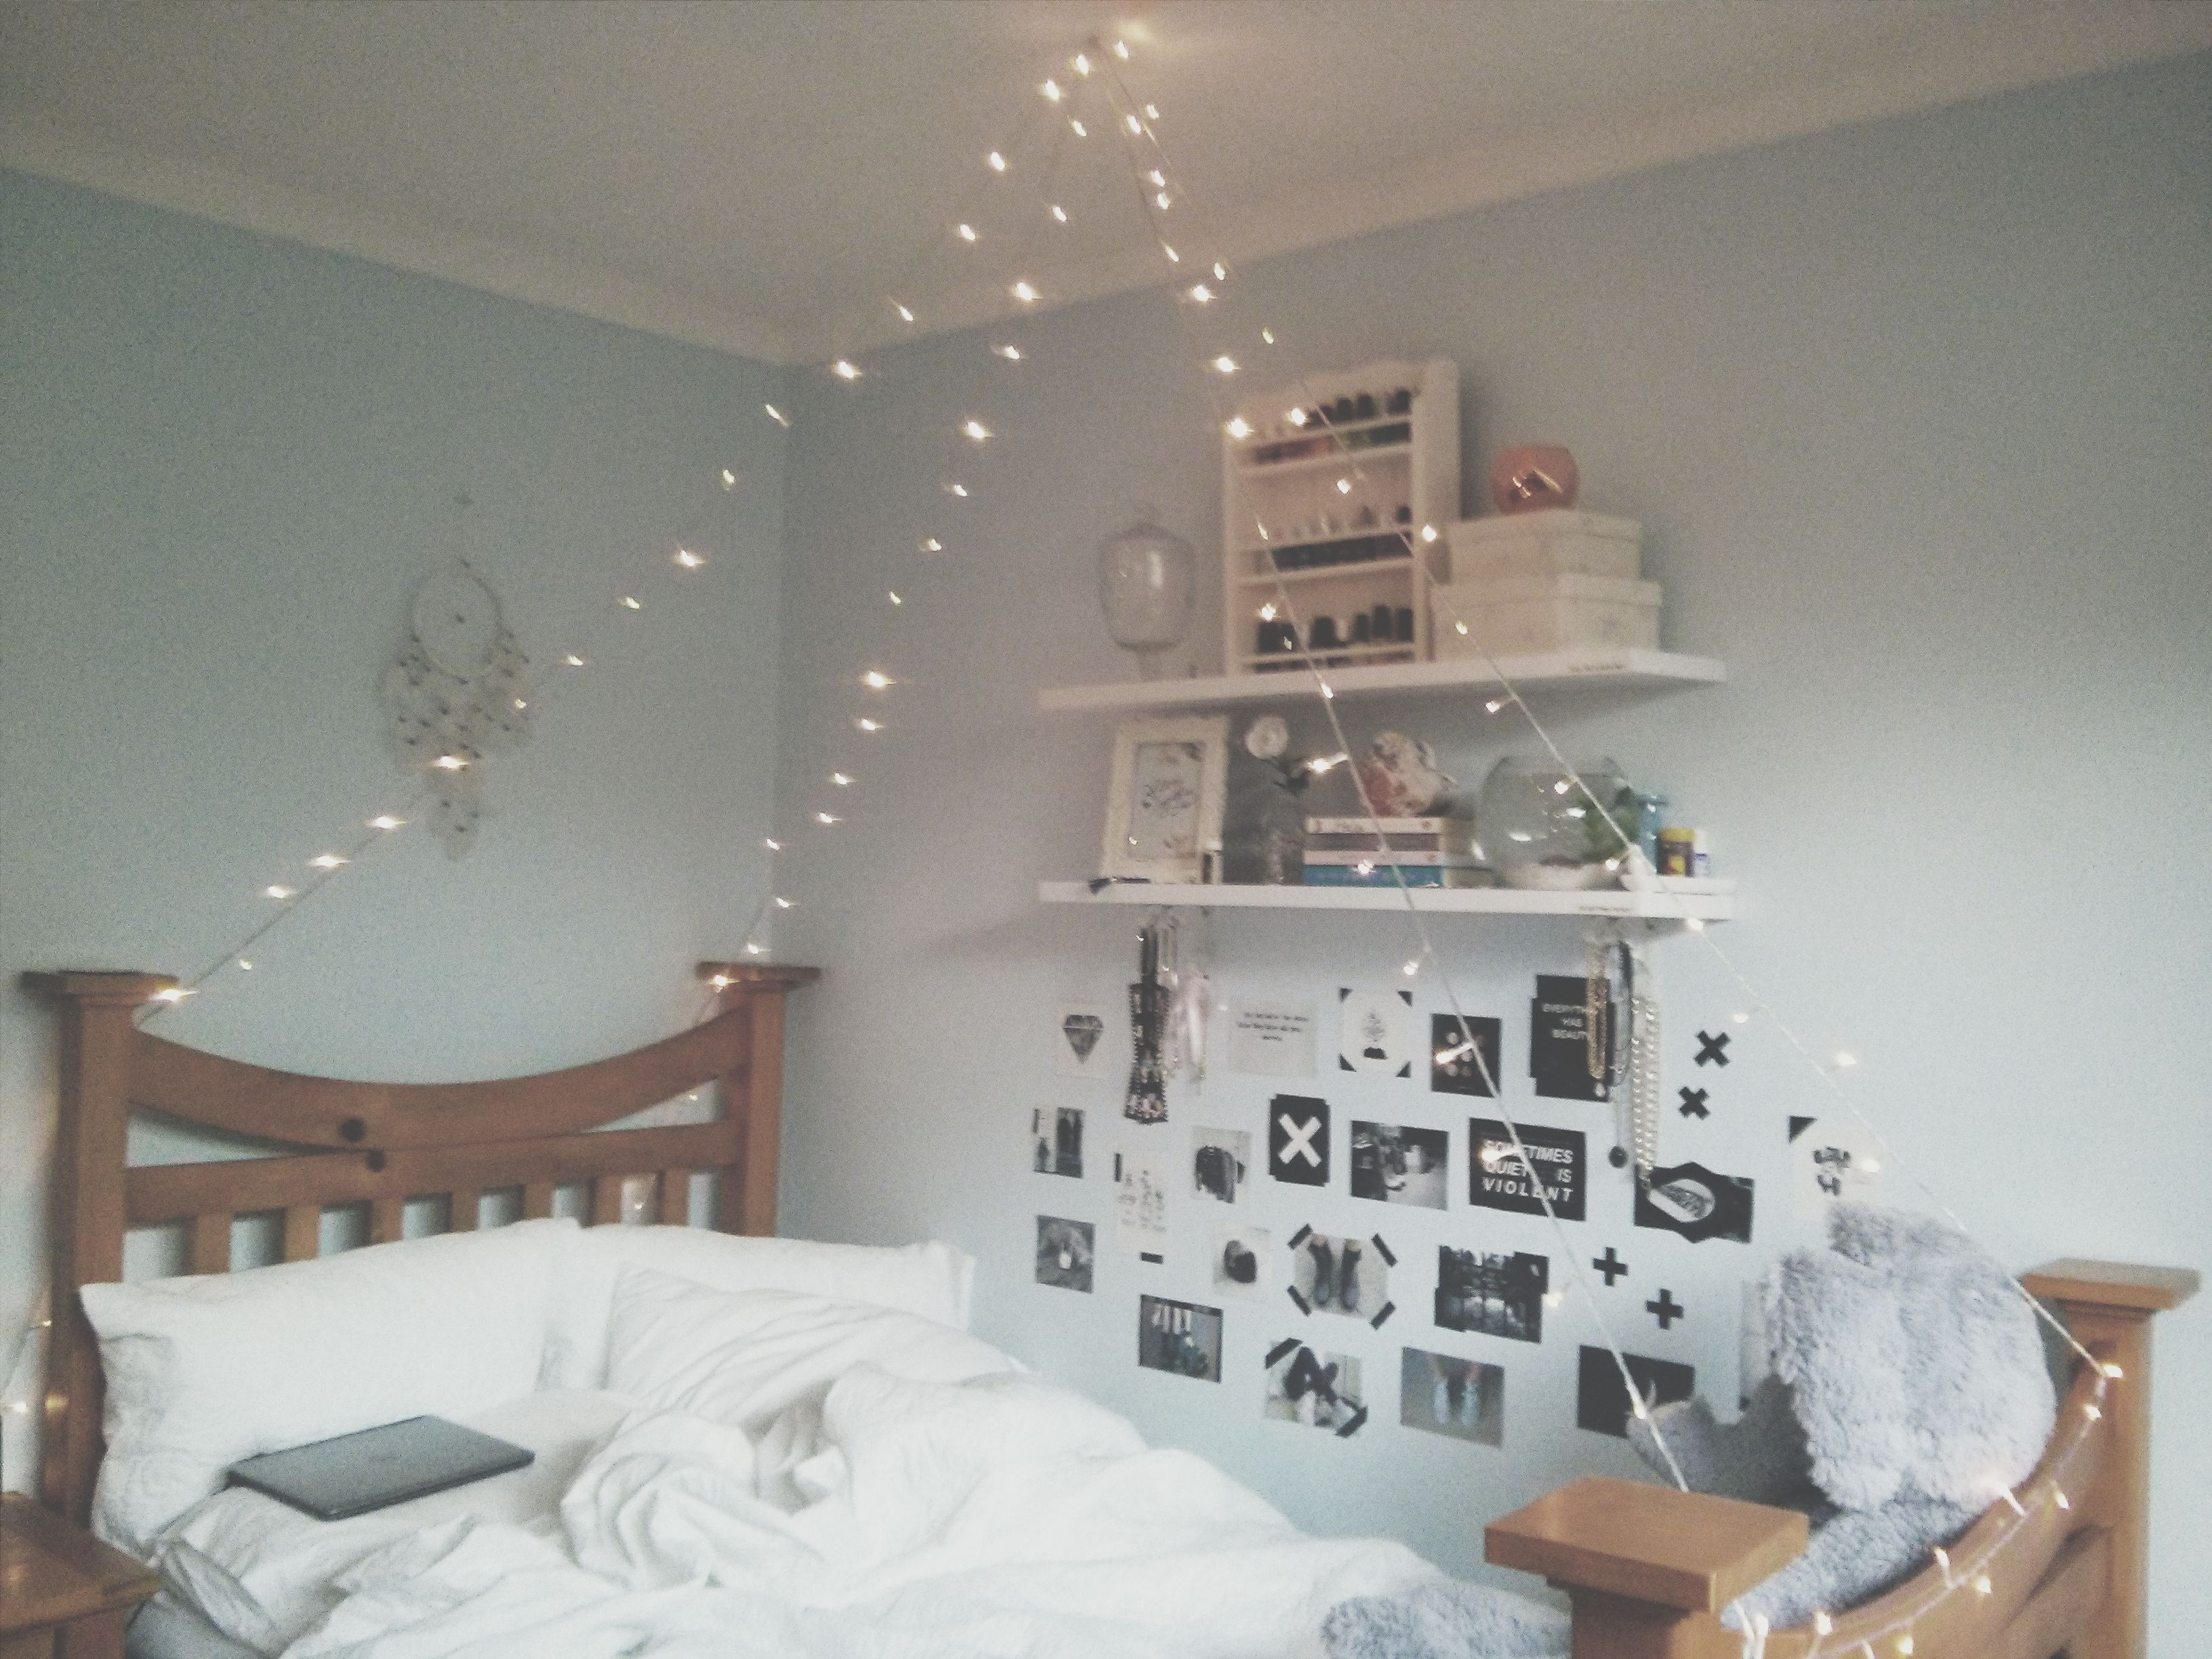 White bedroom designs tumblr - Tumblr Bedrooms Inside Tumblr Bedroom Ideas Tumblr